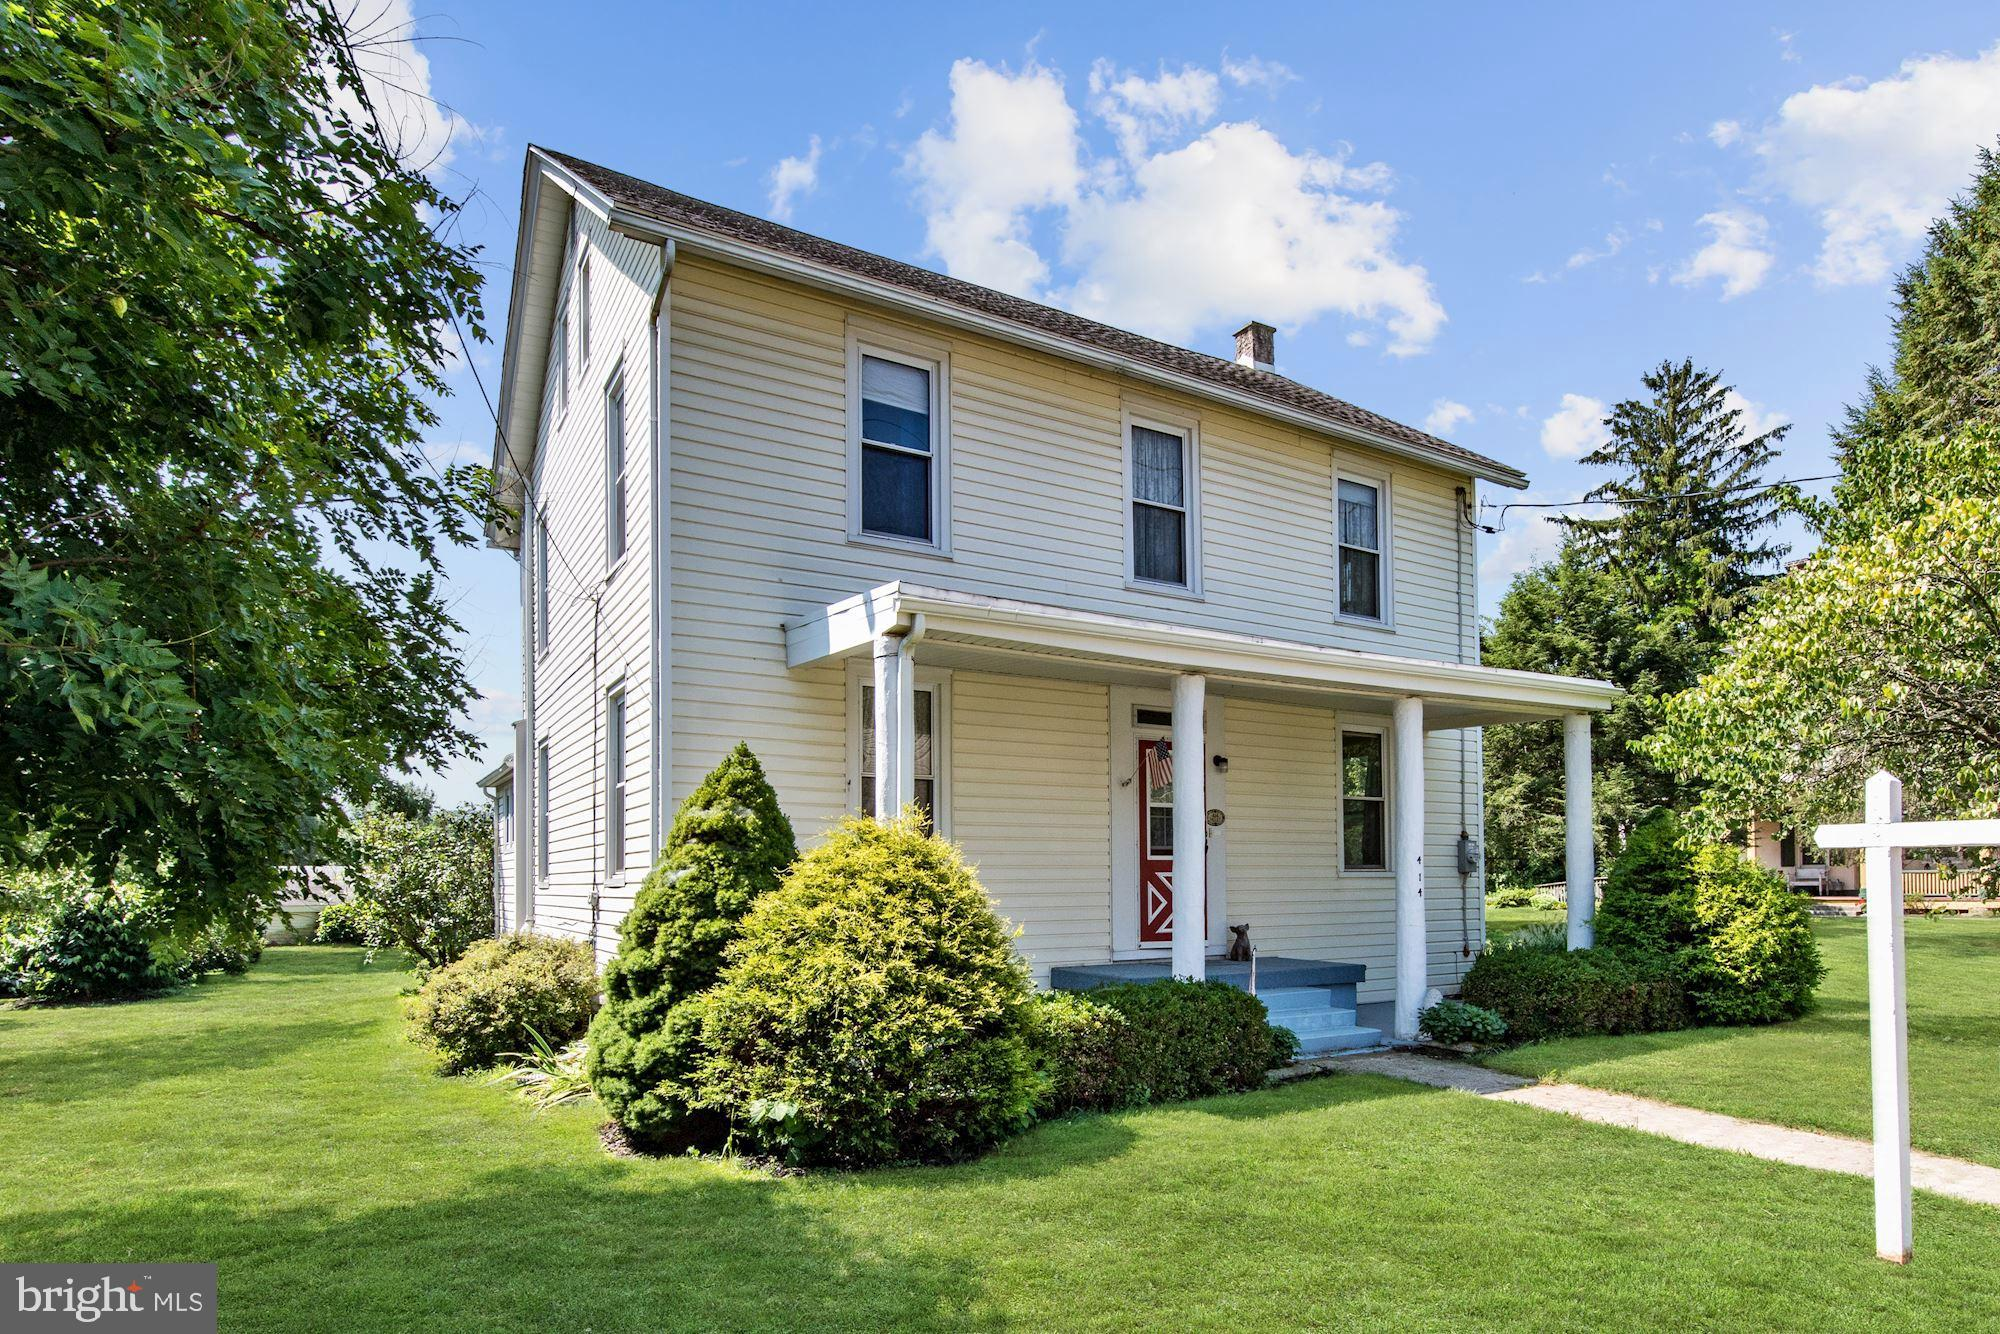 414 VALLEY AVENUE, ATGLEN, PA 19310